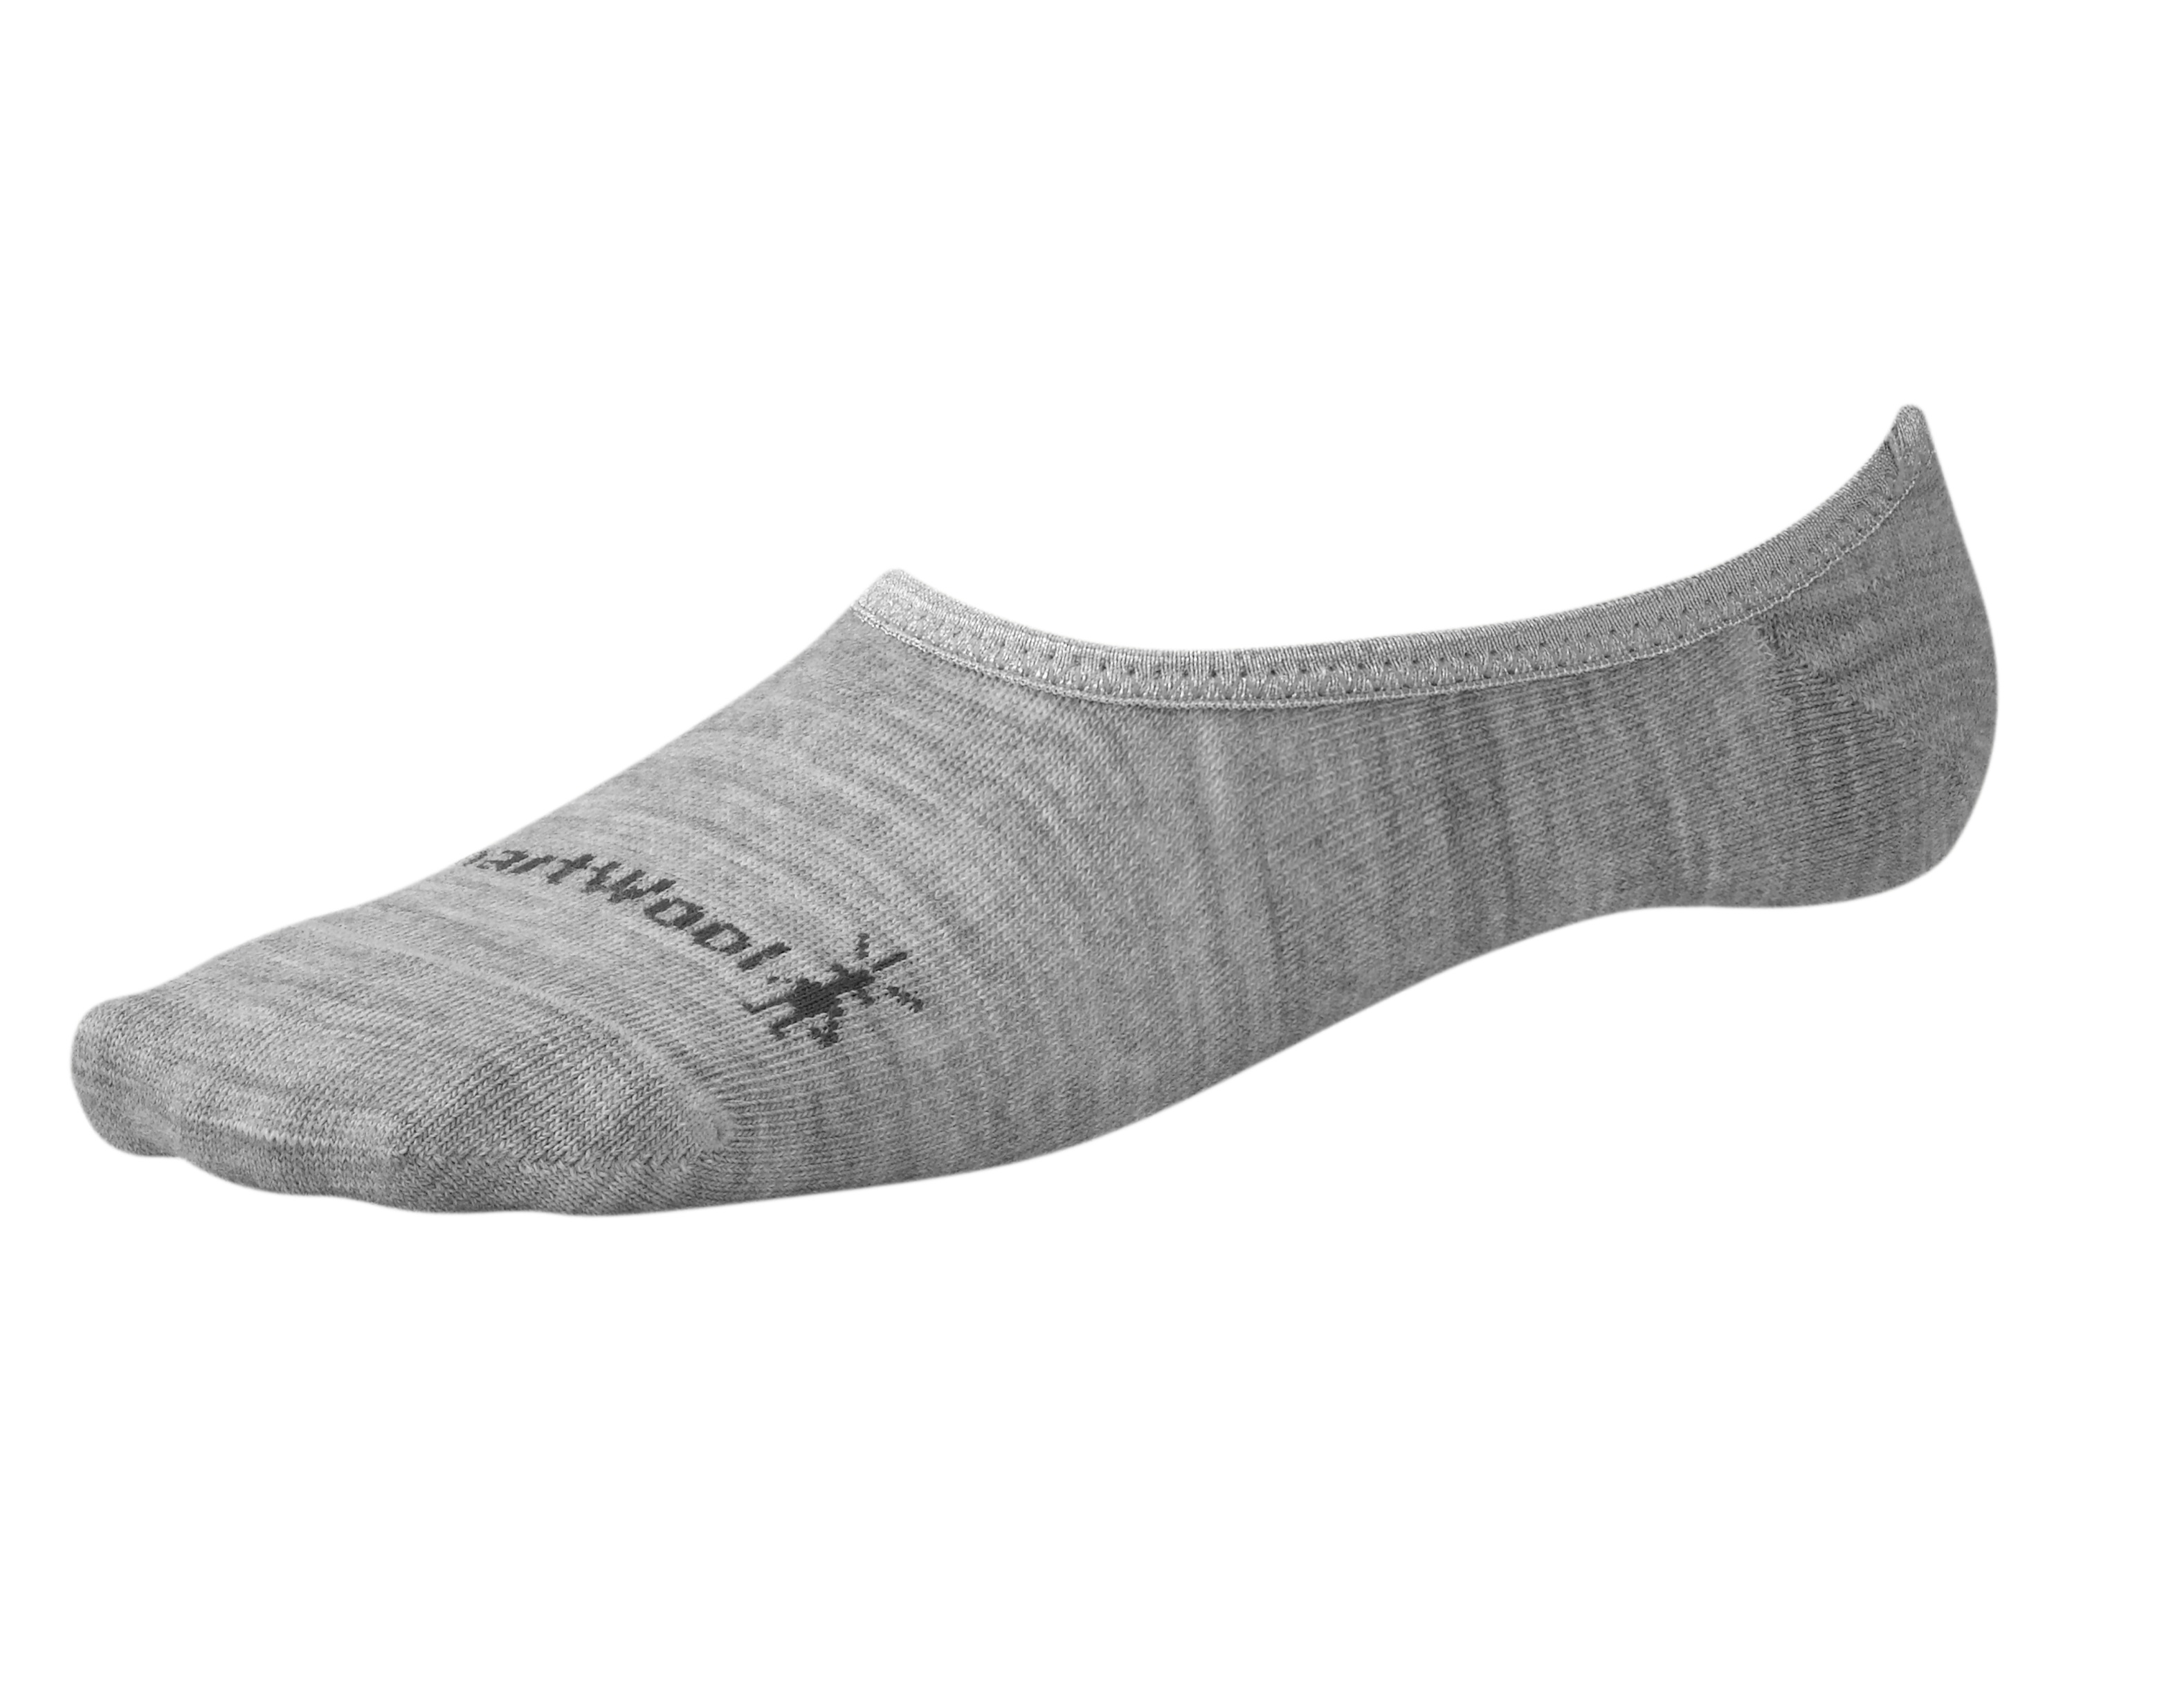 Smartwool Hide and Seek Sock - The Outpost of Holland